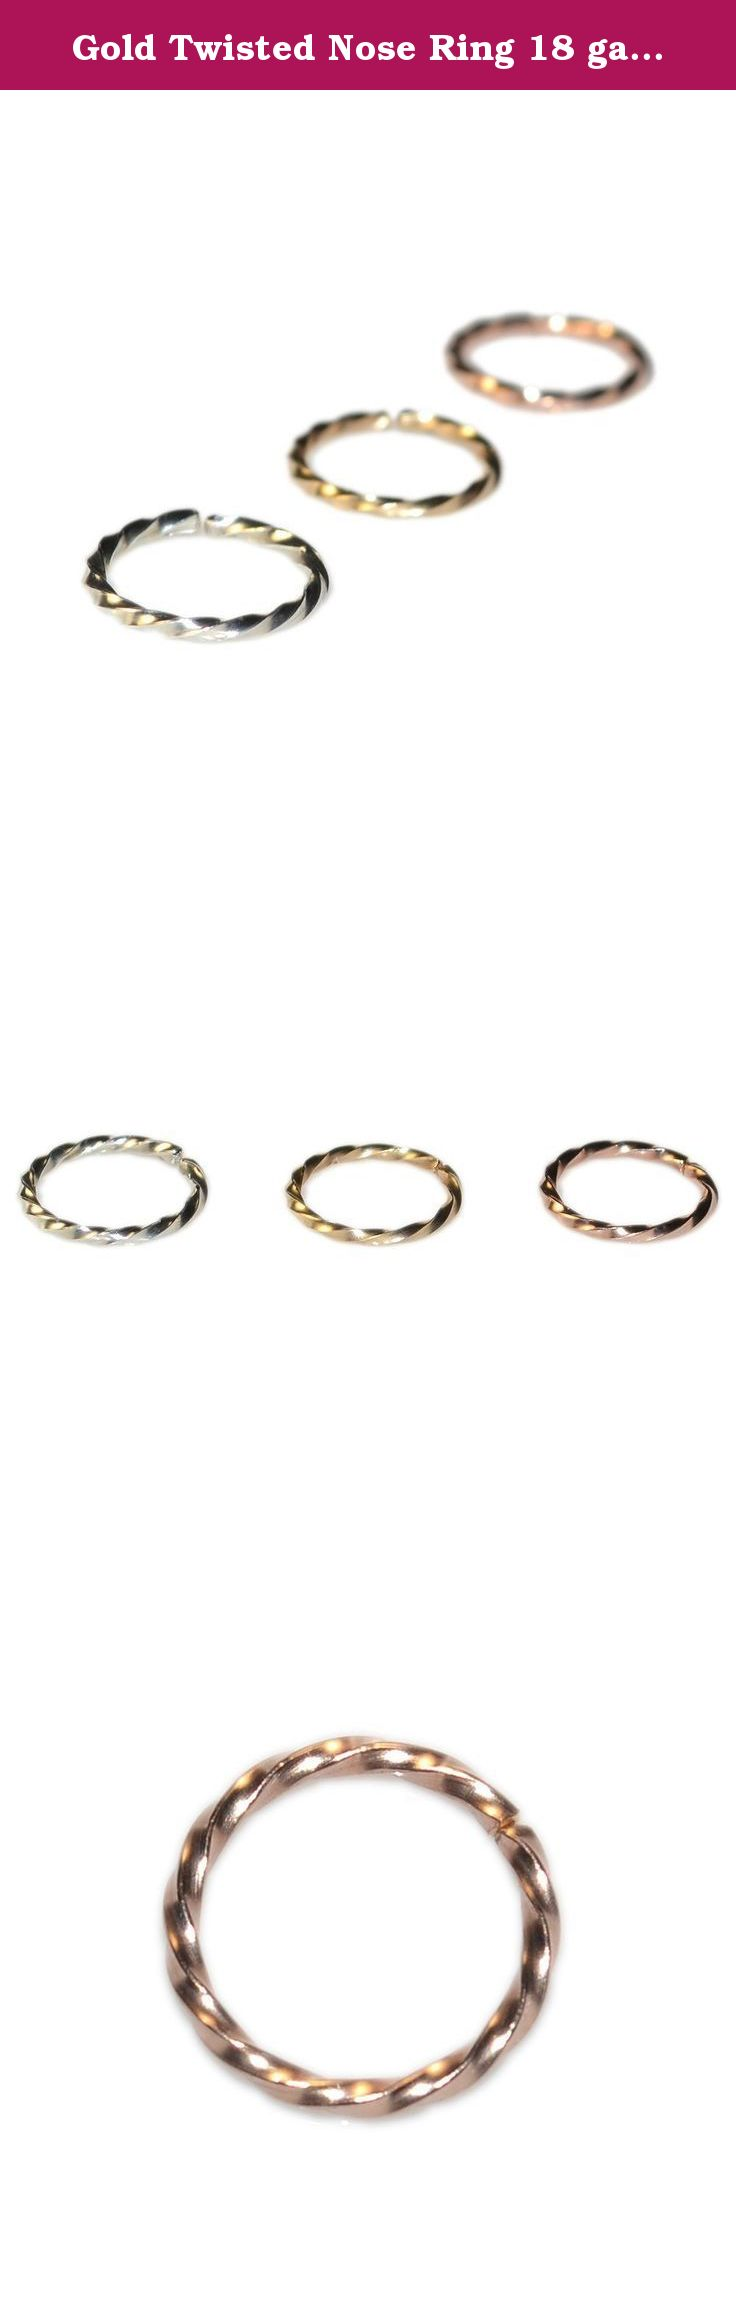 Cute nose piercing jewelry  Gold Twisted Nose Ring  gauge For Men  Daith Earring Rook